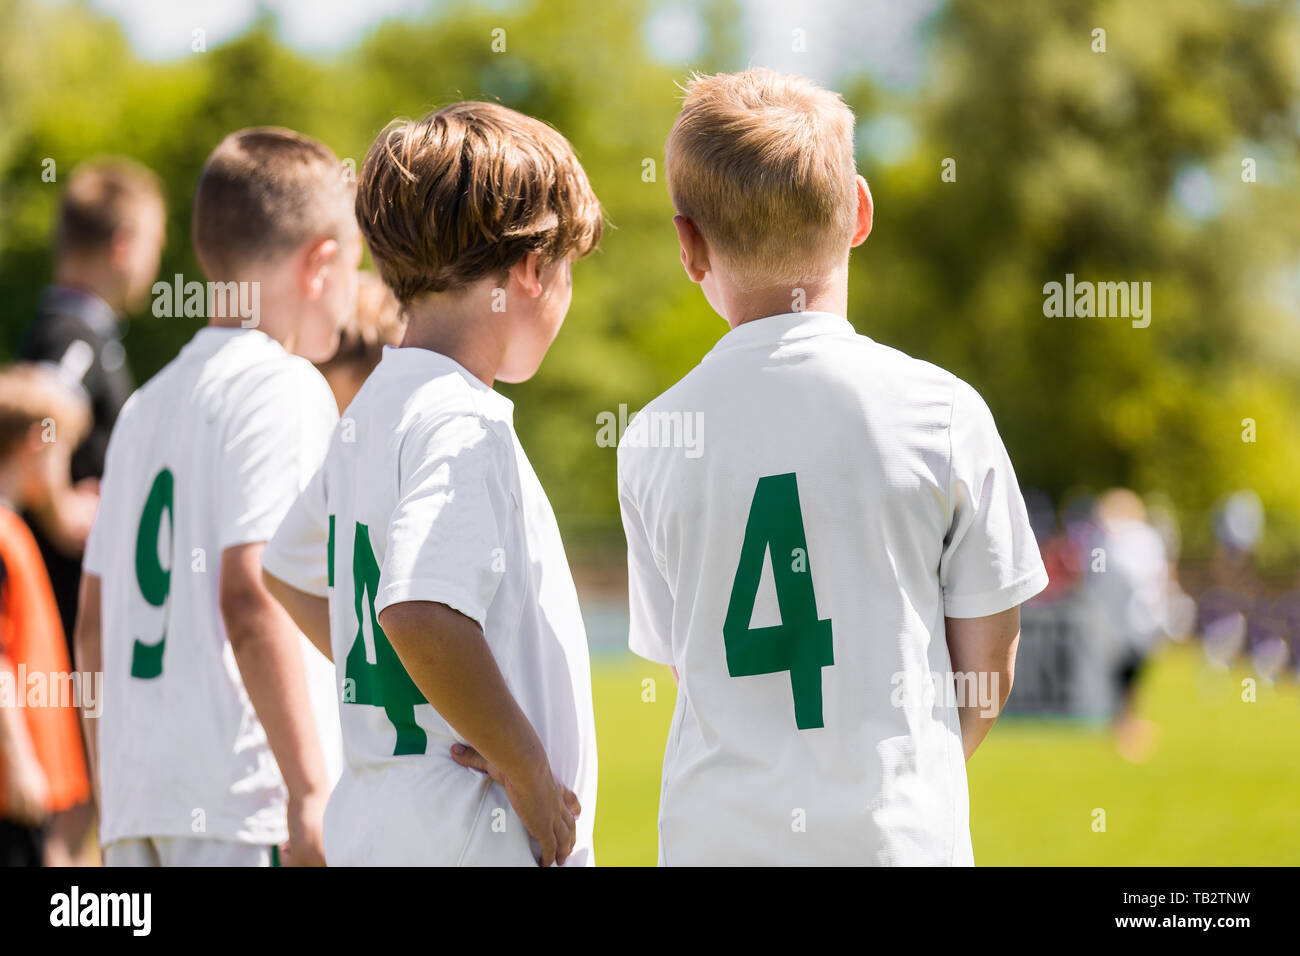 Children Sports Team Members. Junior Soccer Players on Substitution Bench. Kids in White Jersey Shirts with Green Numbers on its Back - Stock Image